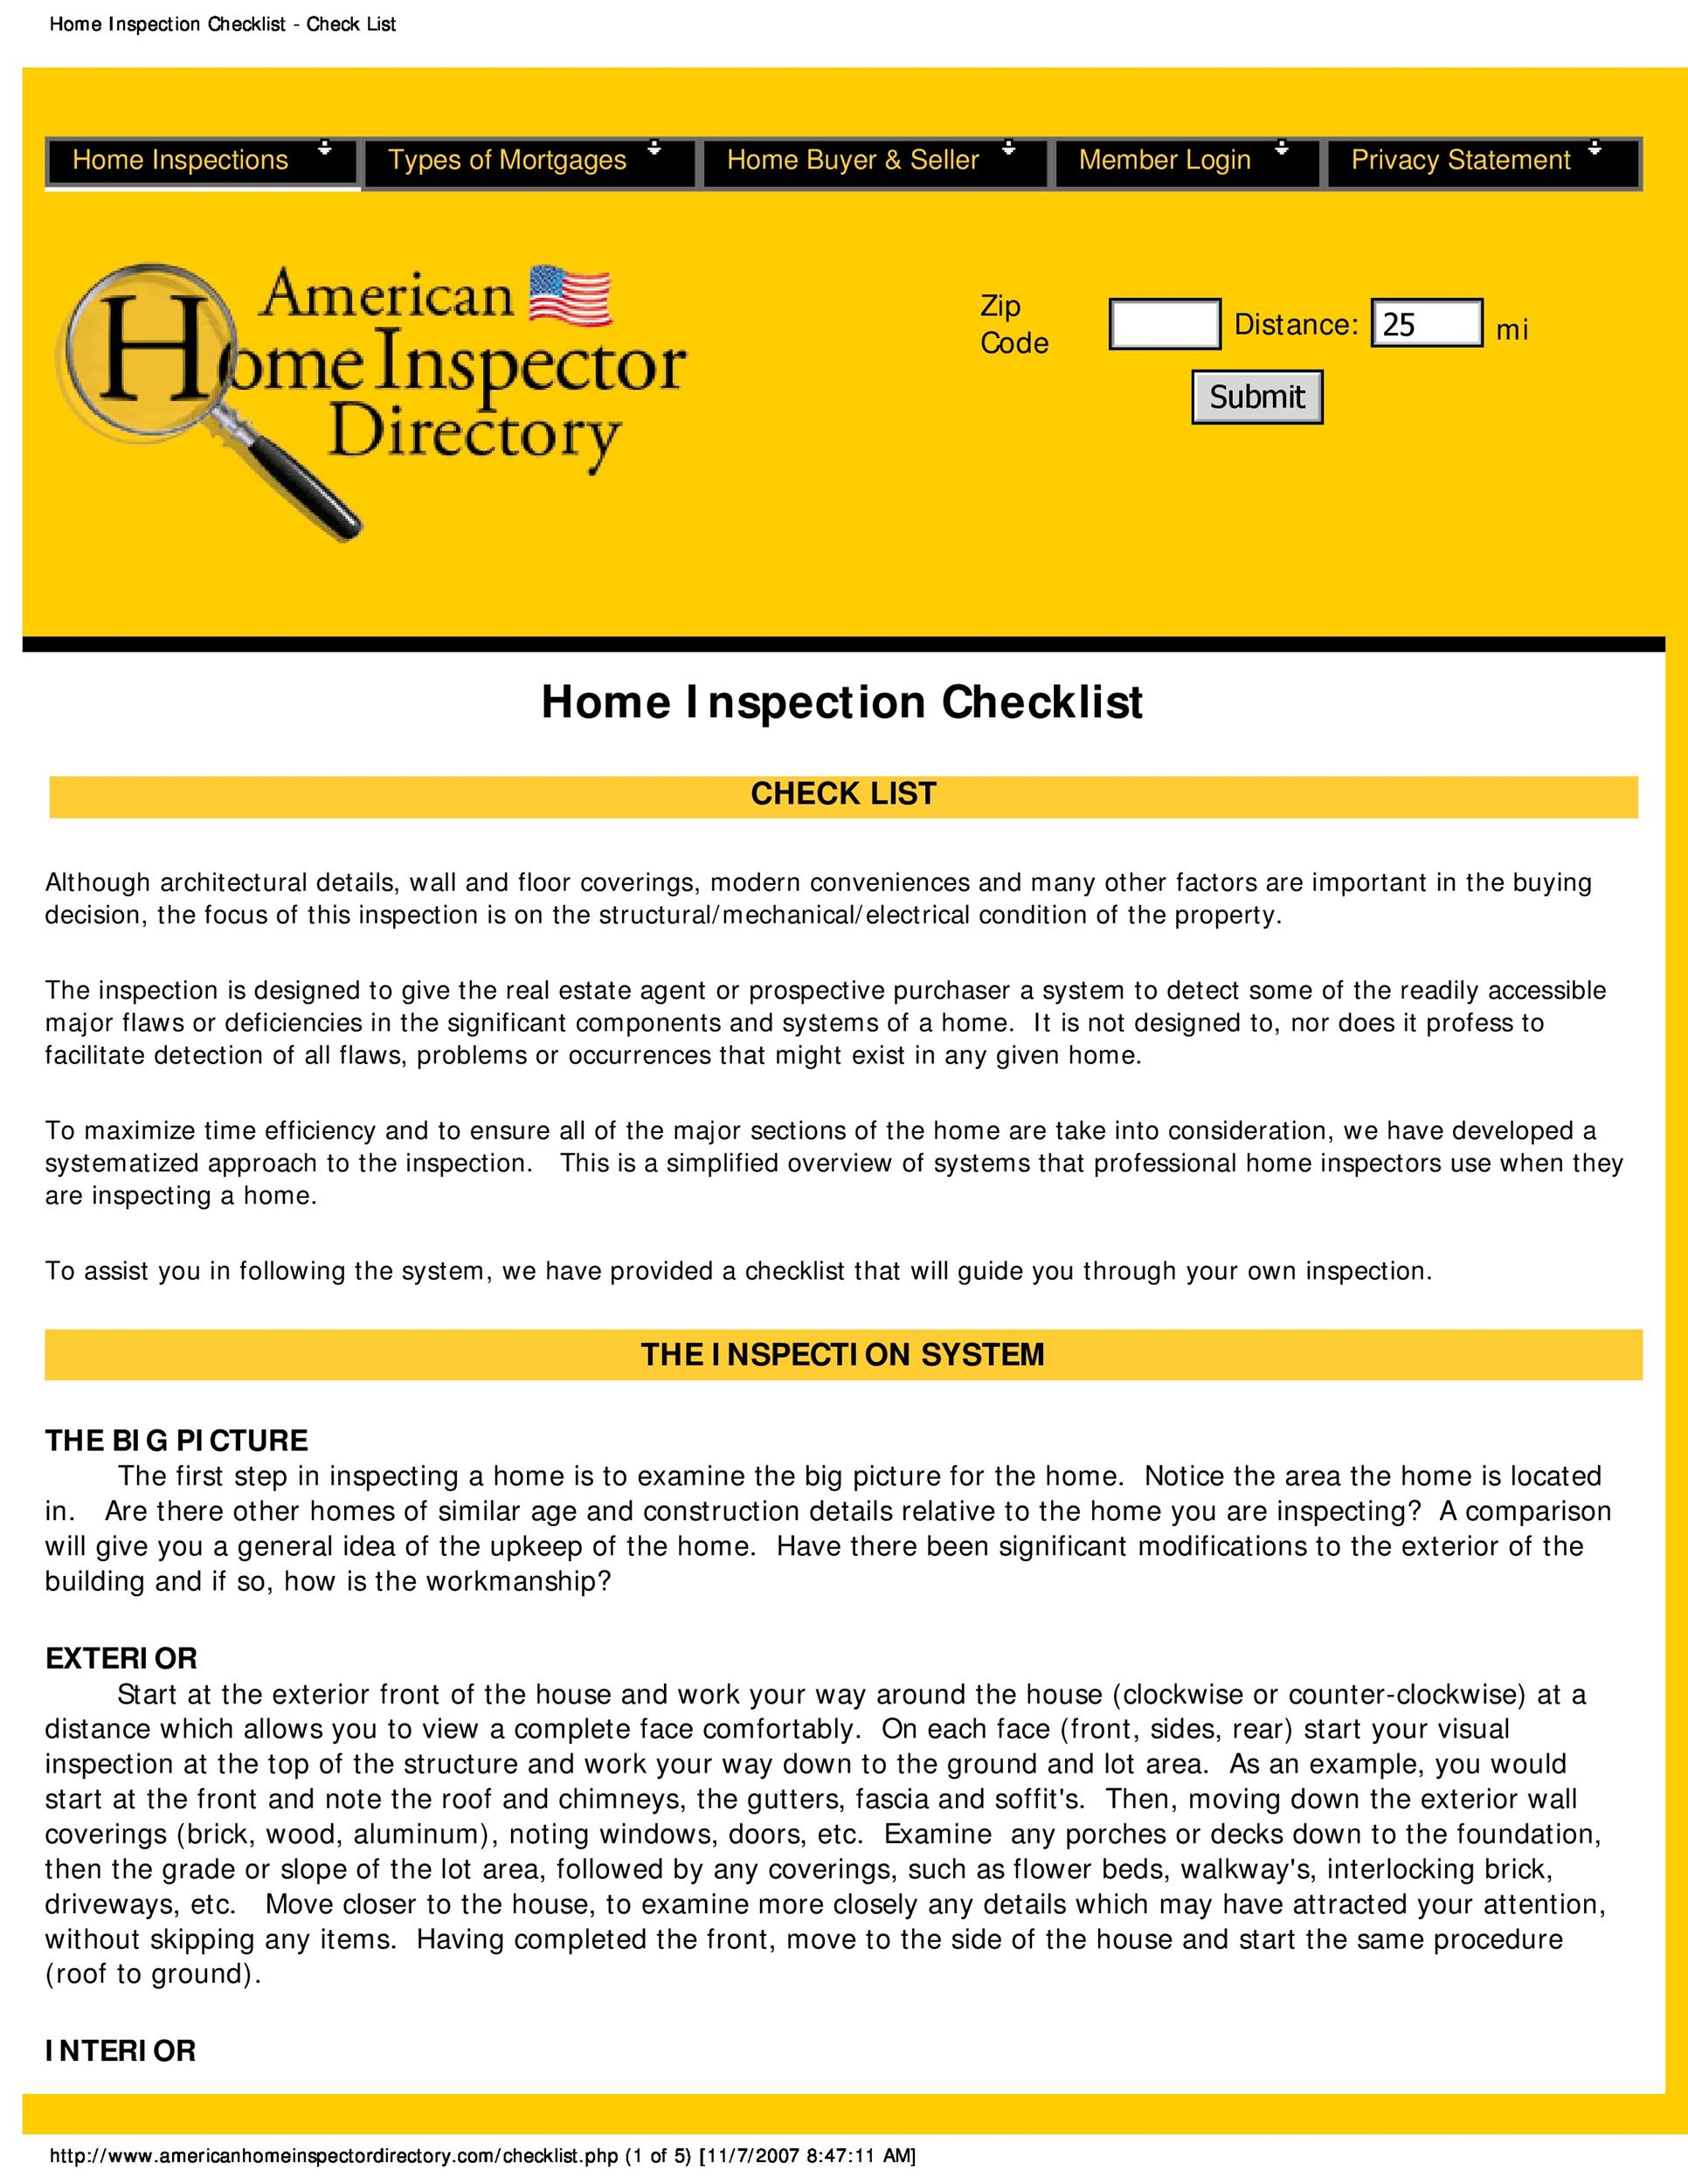 How To Price House Paint Jobs The Home Seller S Guide: 20+ Printable Home Inspection Checklists (Word, PDF